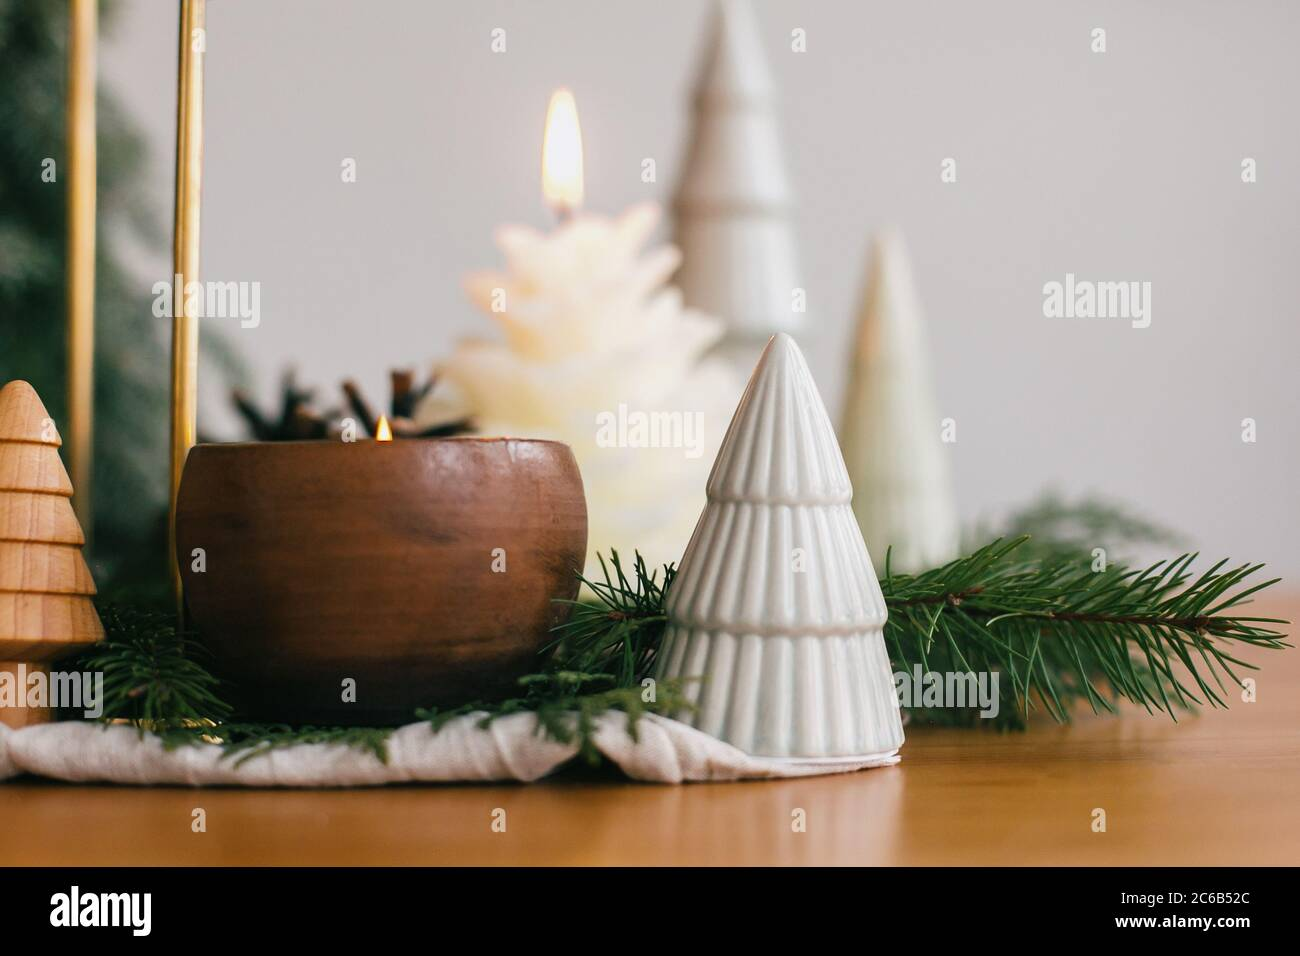 Christmas Trees Candles And Pine Cones On Rustic Fabric On Wooden Table Festive Modern Decor Zero Waste Miniature Wooden And Handmade Pine Trees Stock Photo Alamy